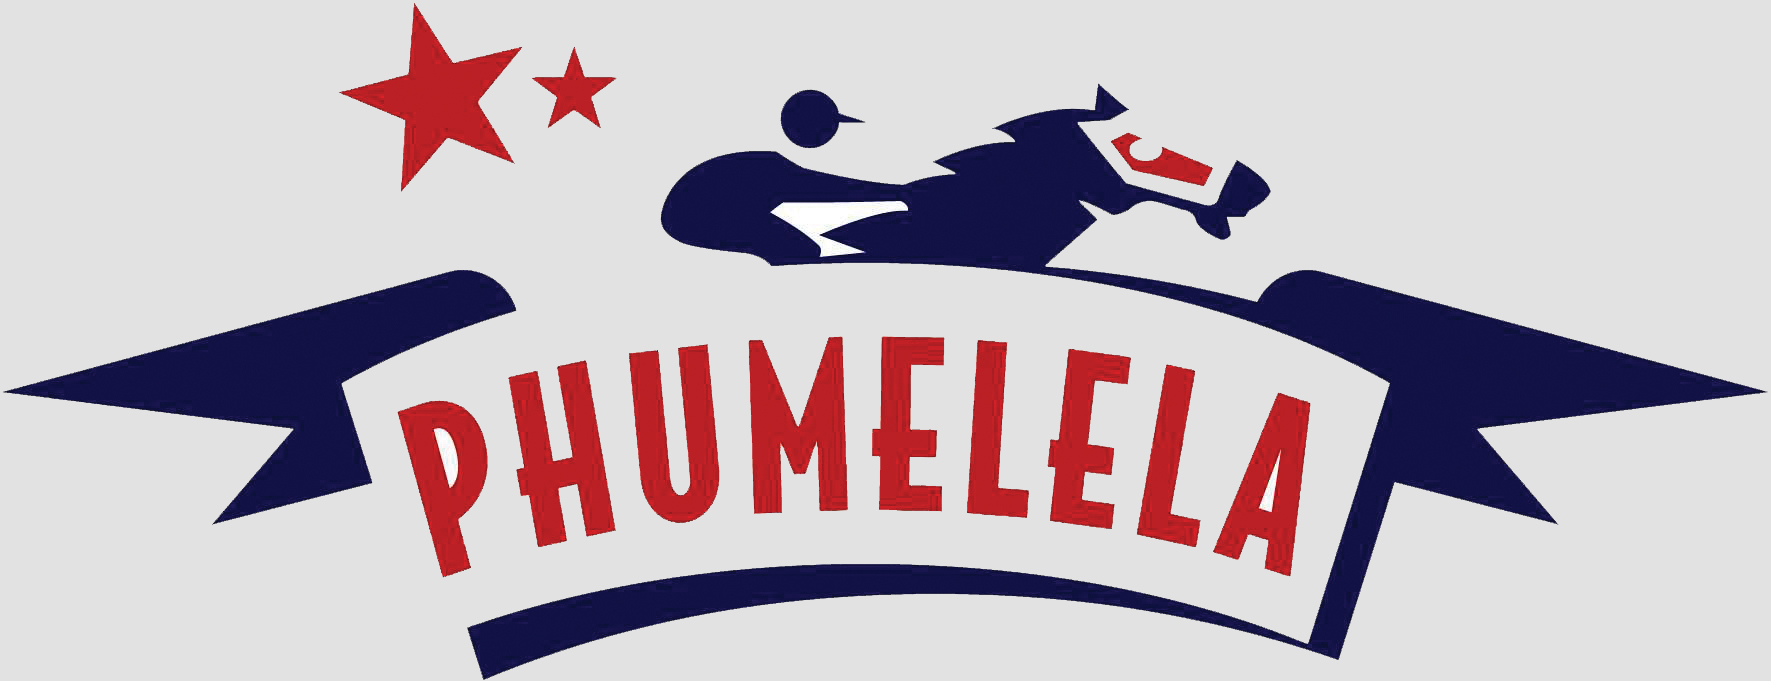 Tabcorp Partners with Phumelela